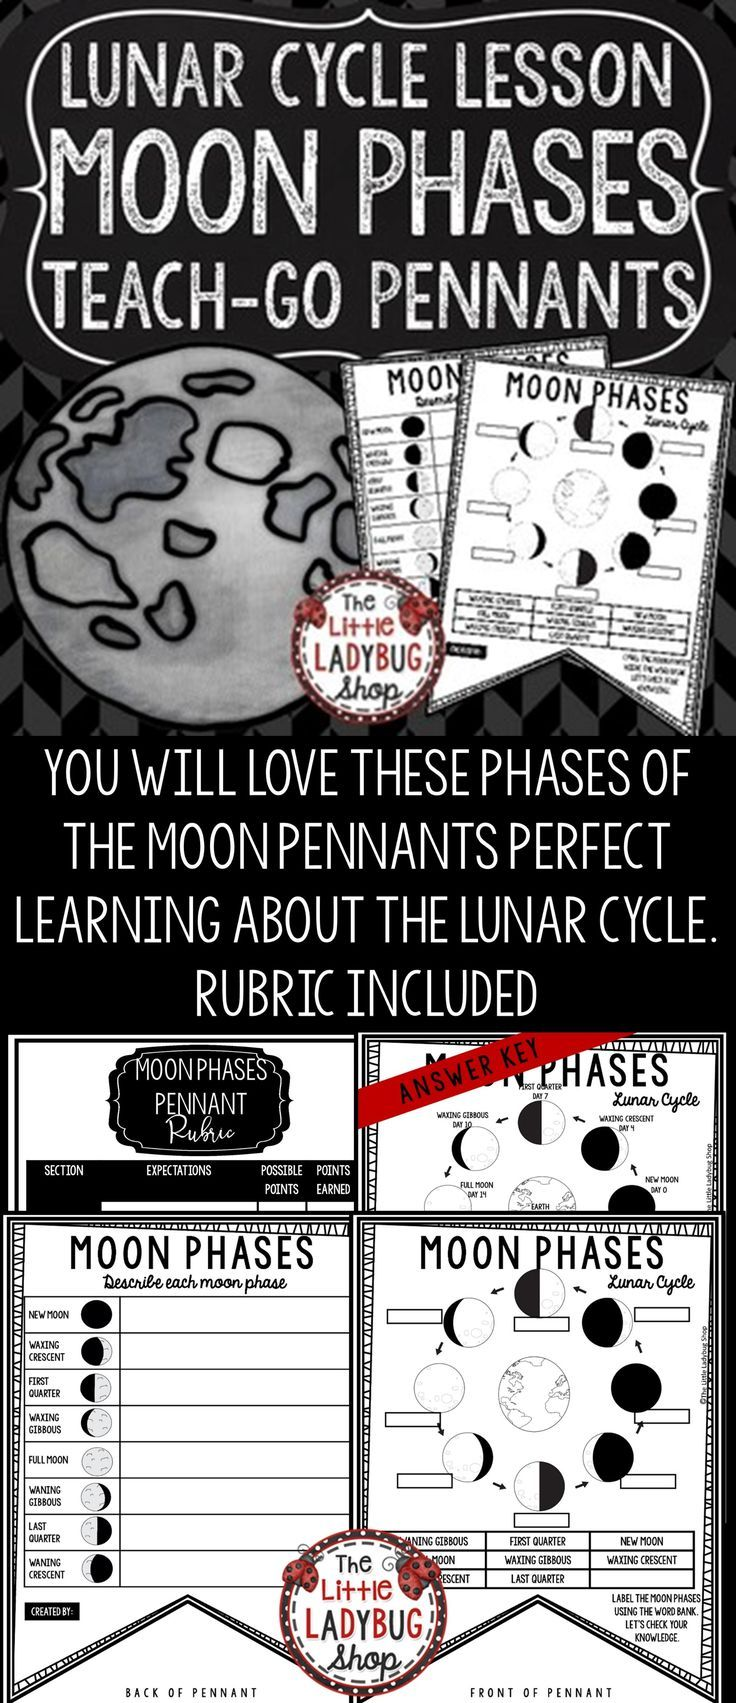 Lunar Cycle Moon Phases Activity Teach Go Pennants Moon Phases Worksheet Moon Phases Activities Moon Phases Upper Elementary Science [ 1703 x 736 Pixel ]